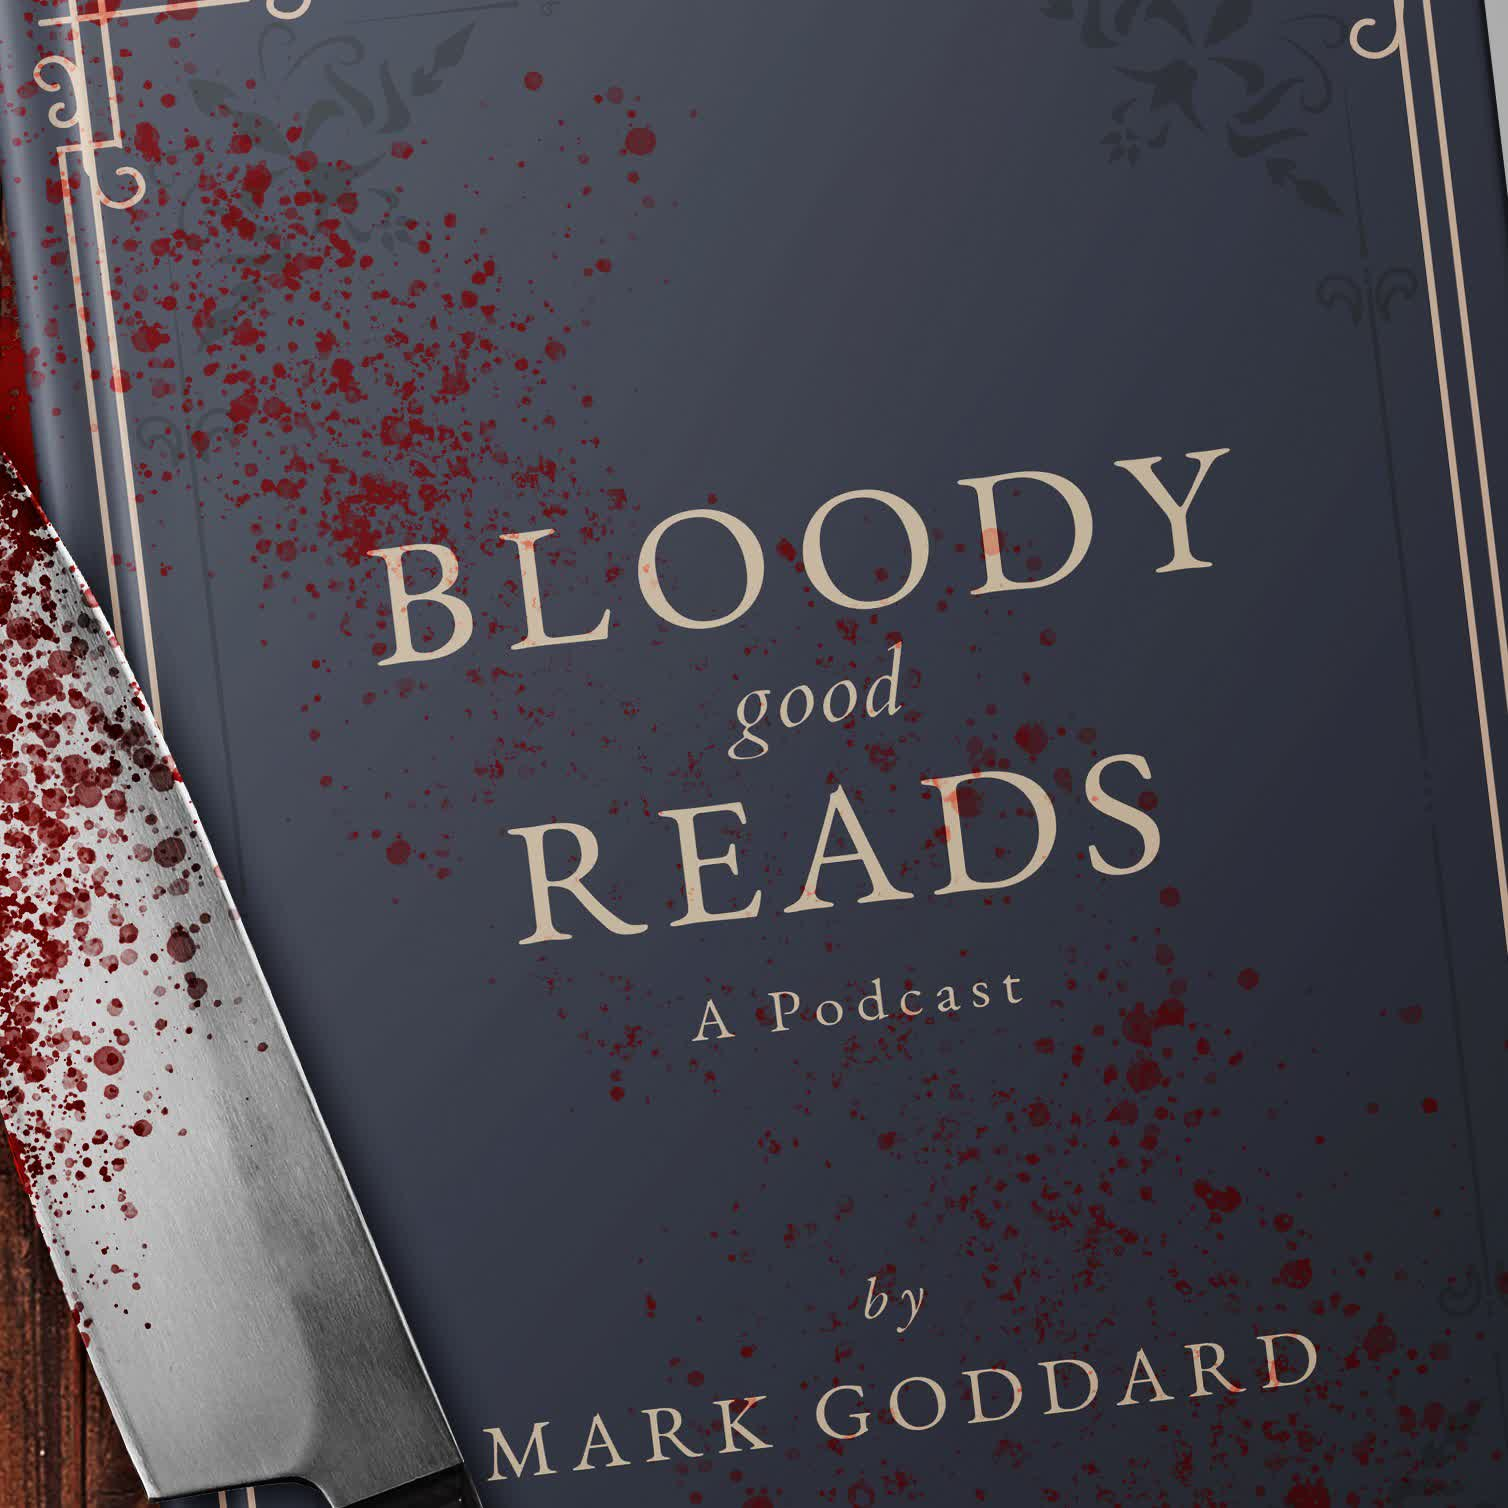 Bloody Good Reads Chapter 6 John Everson